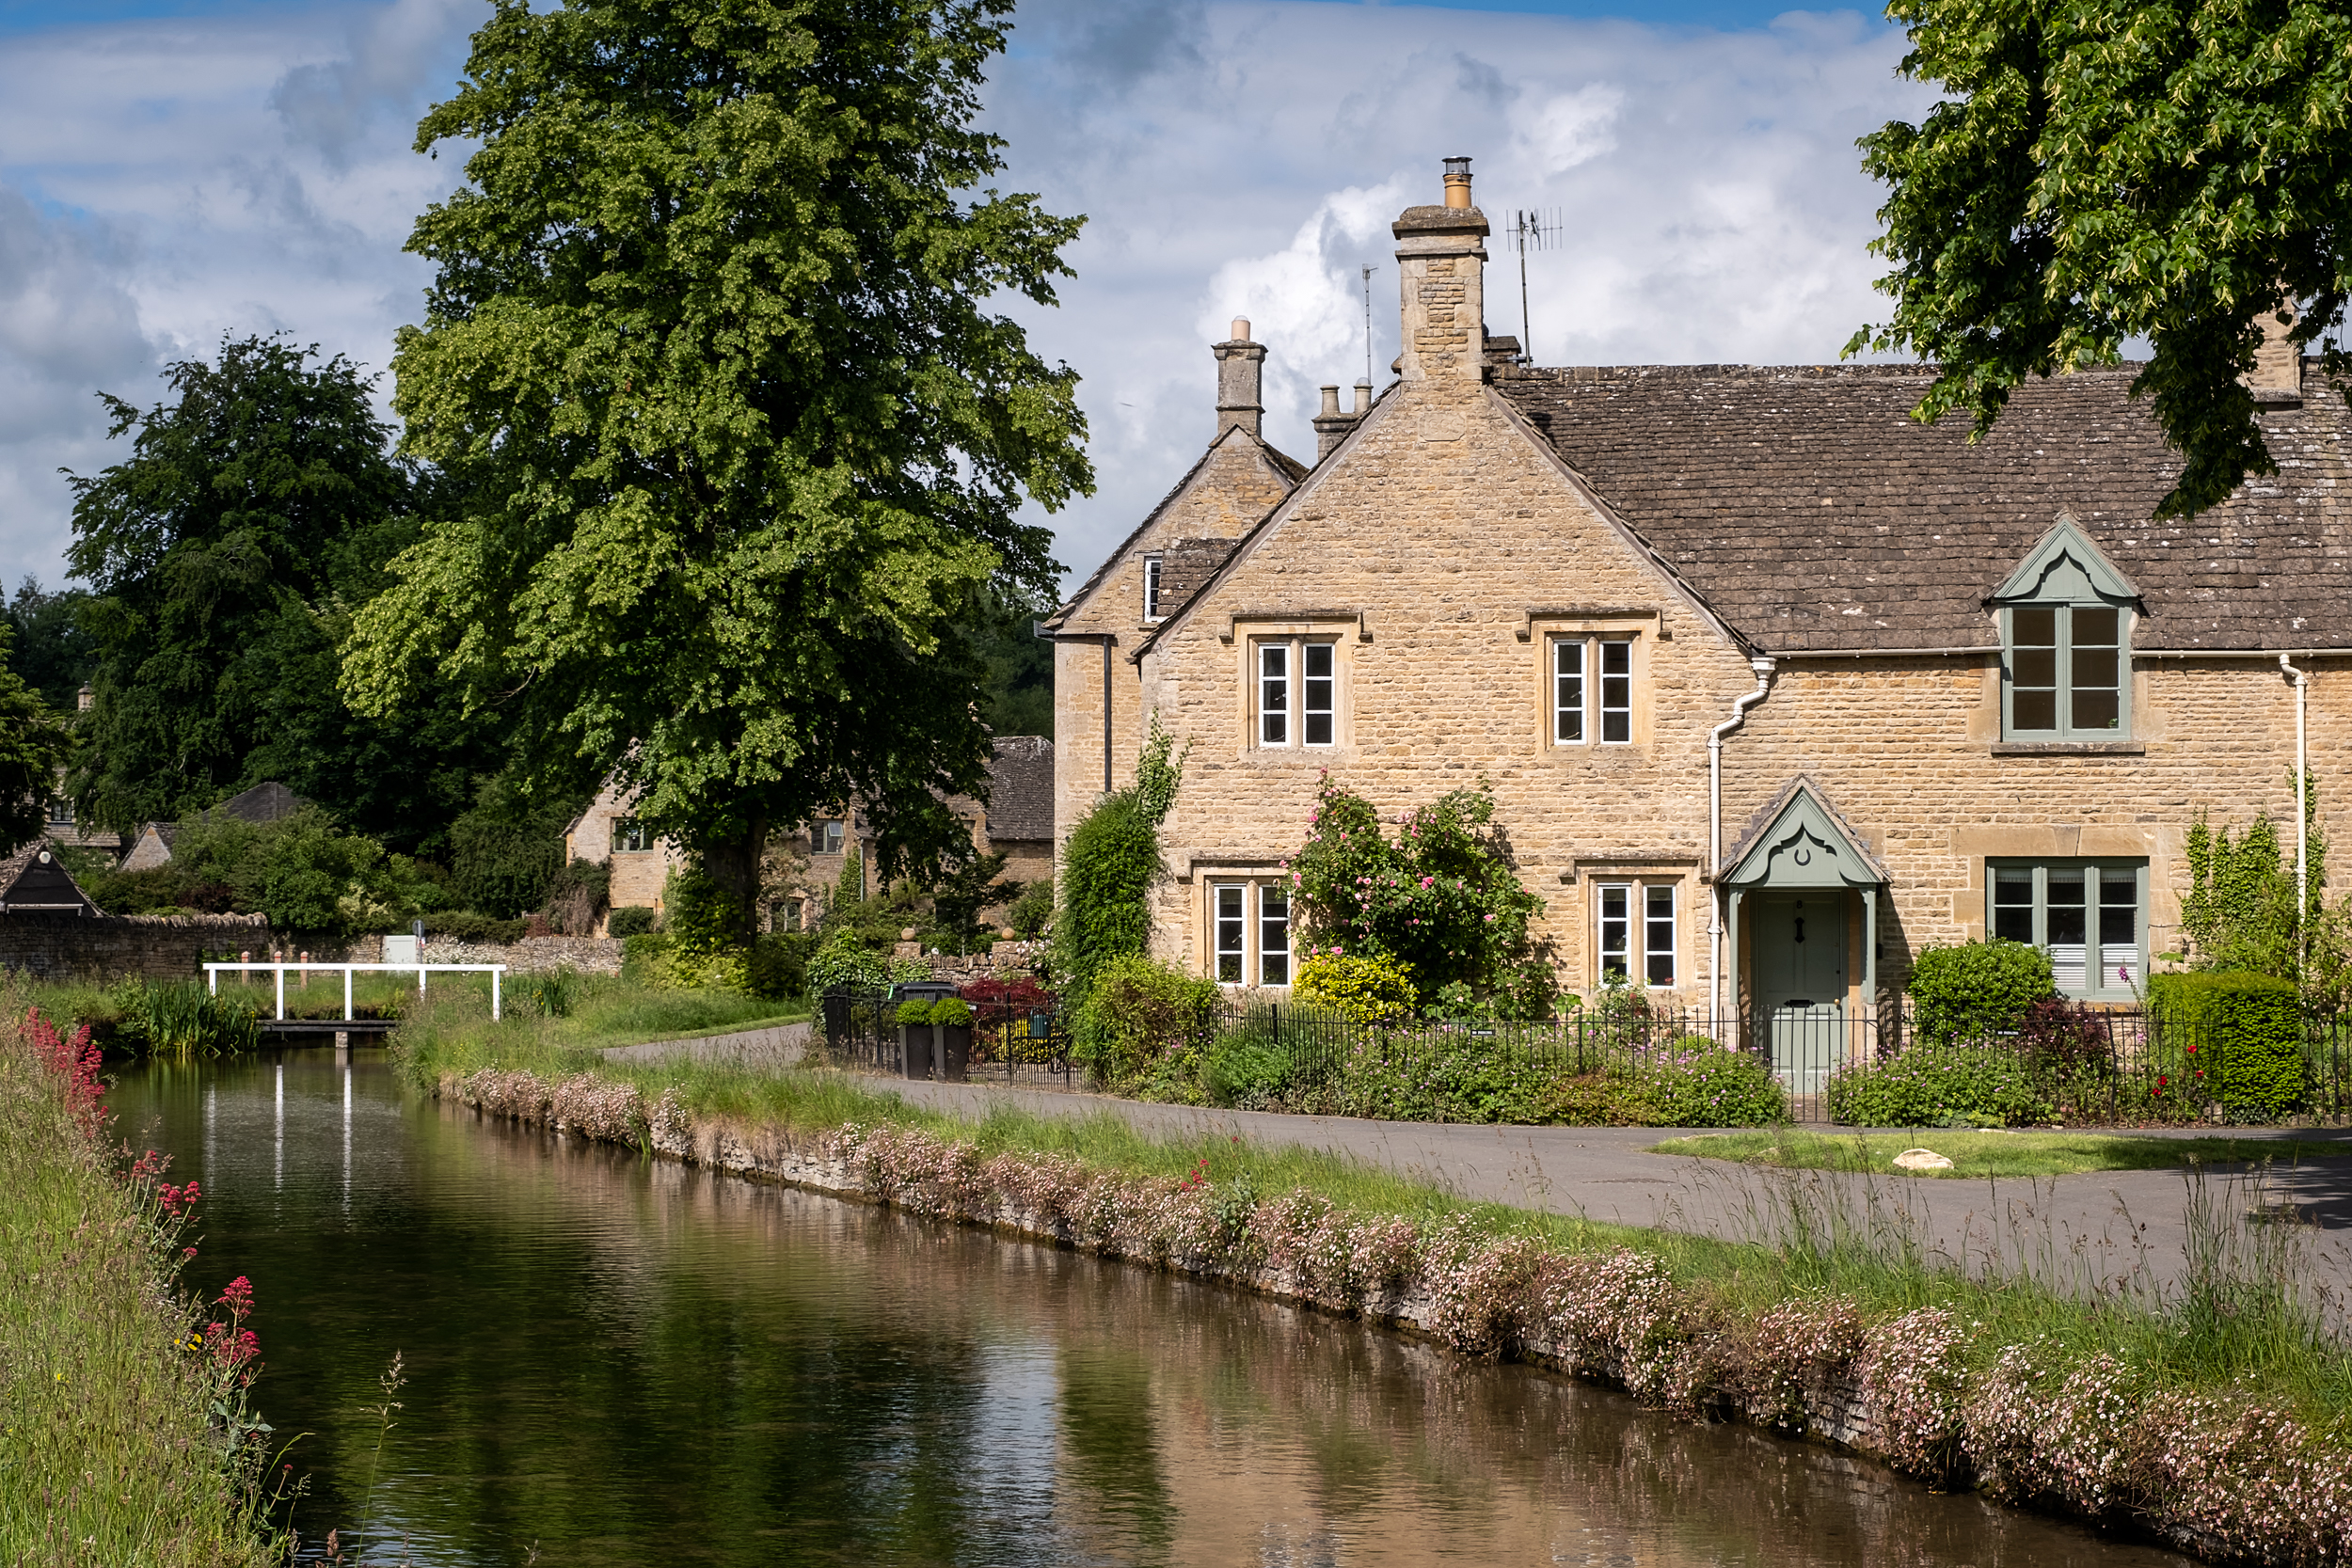 20190619_cotswolds-568-Edit.jpg